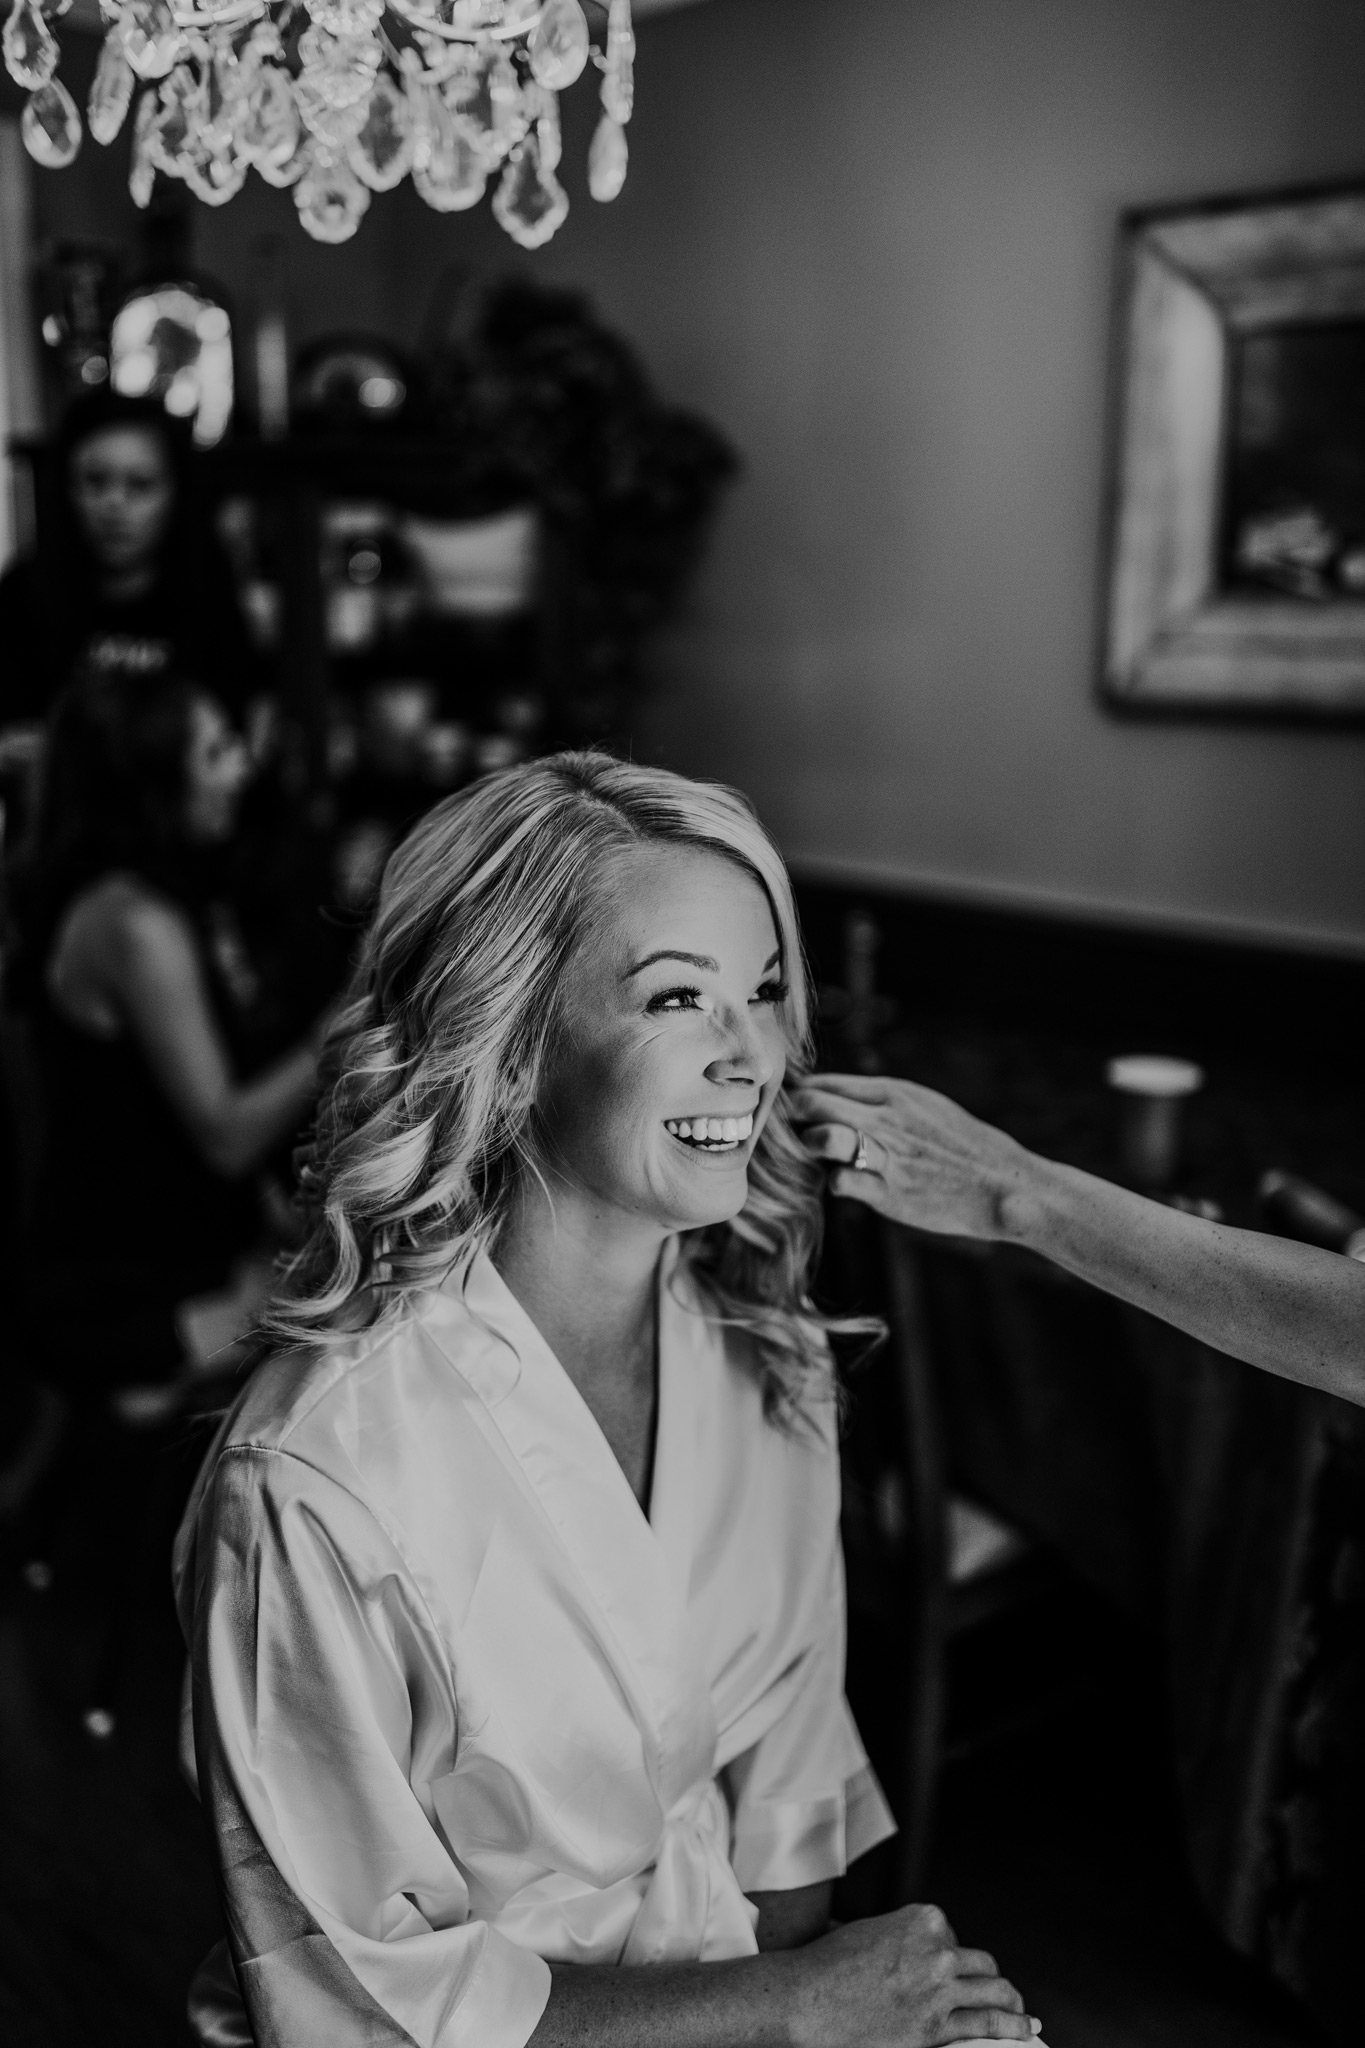 bride laughing and smiling while getting ready